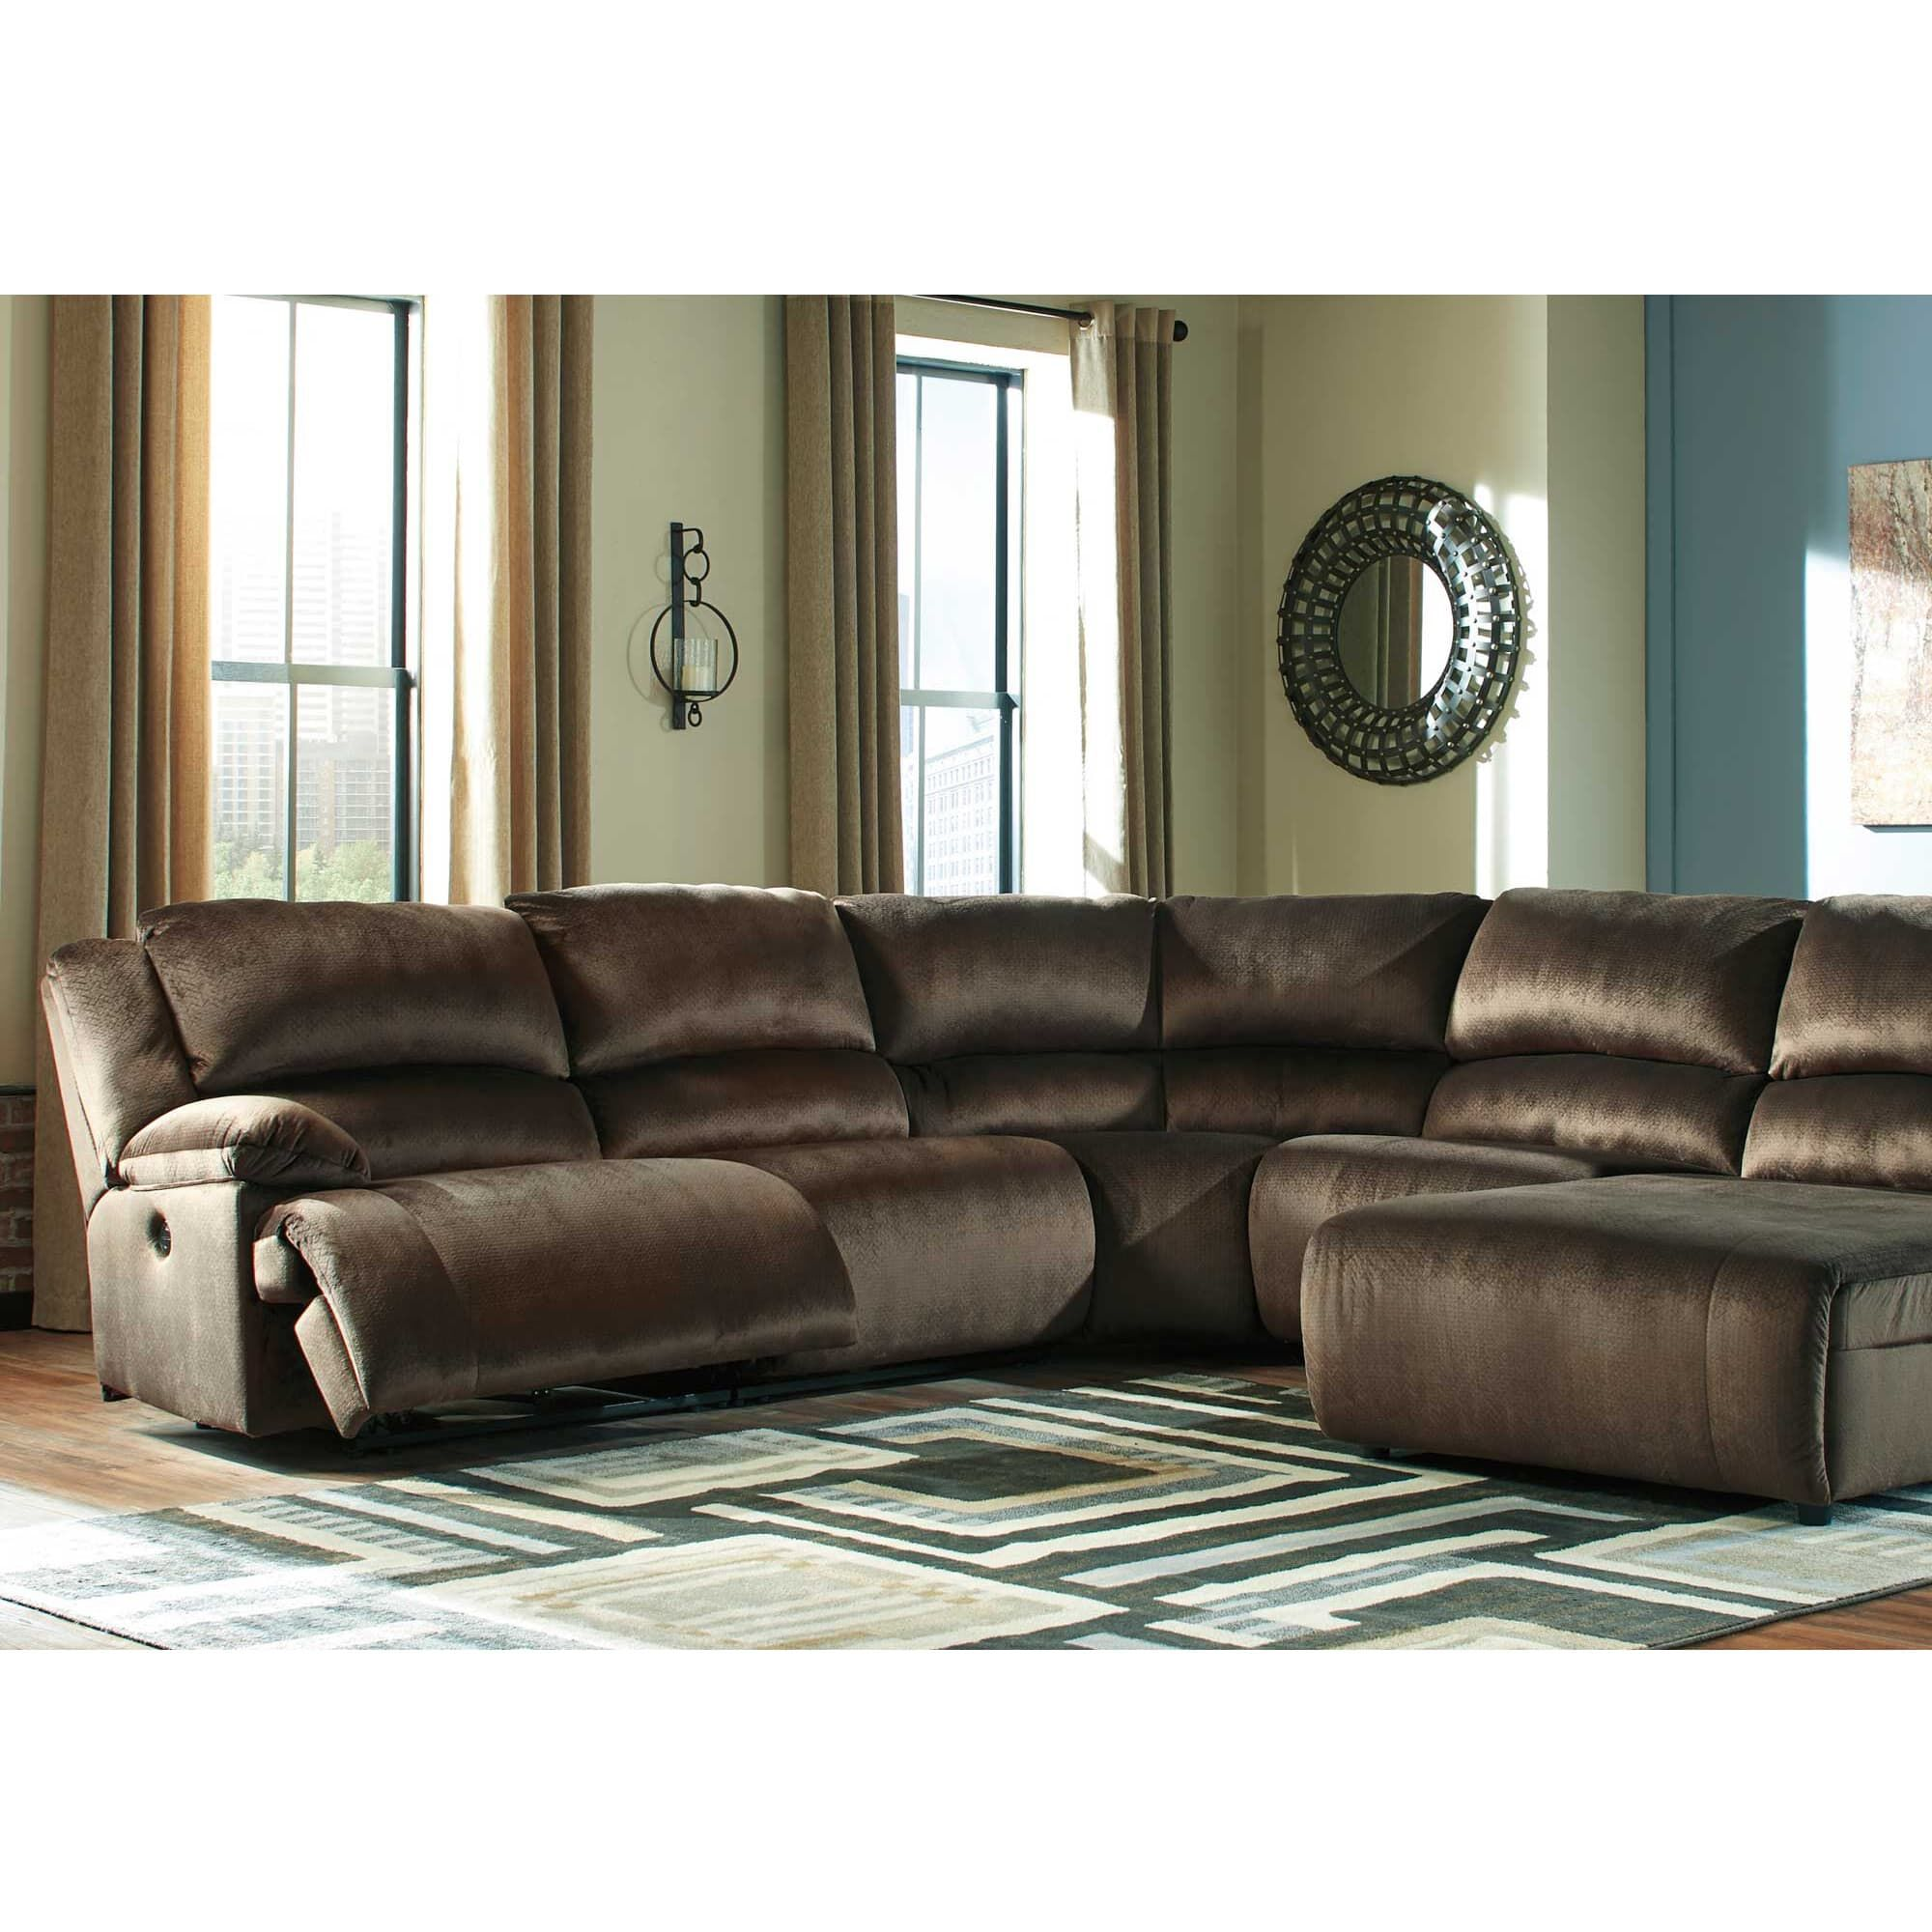 Rent To Own Sectional Sofas And Couches Aaron S